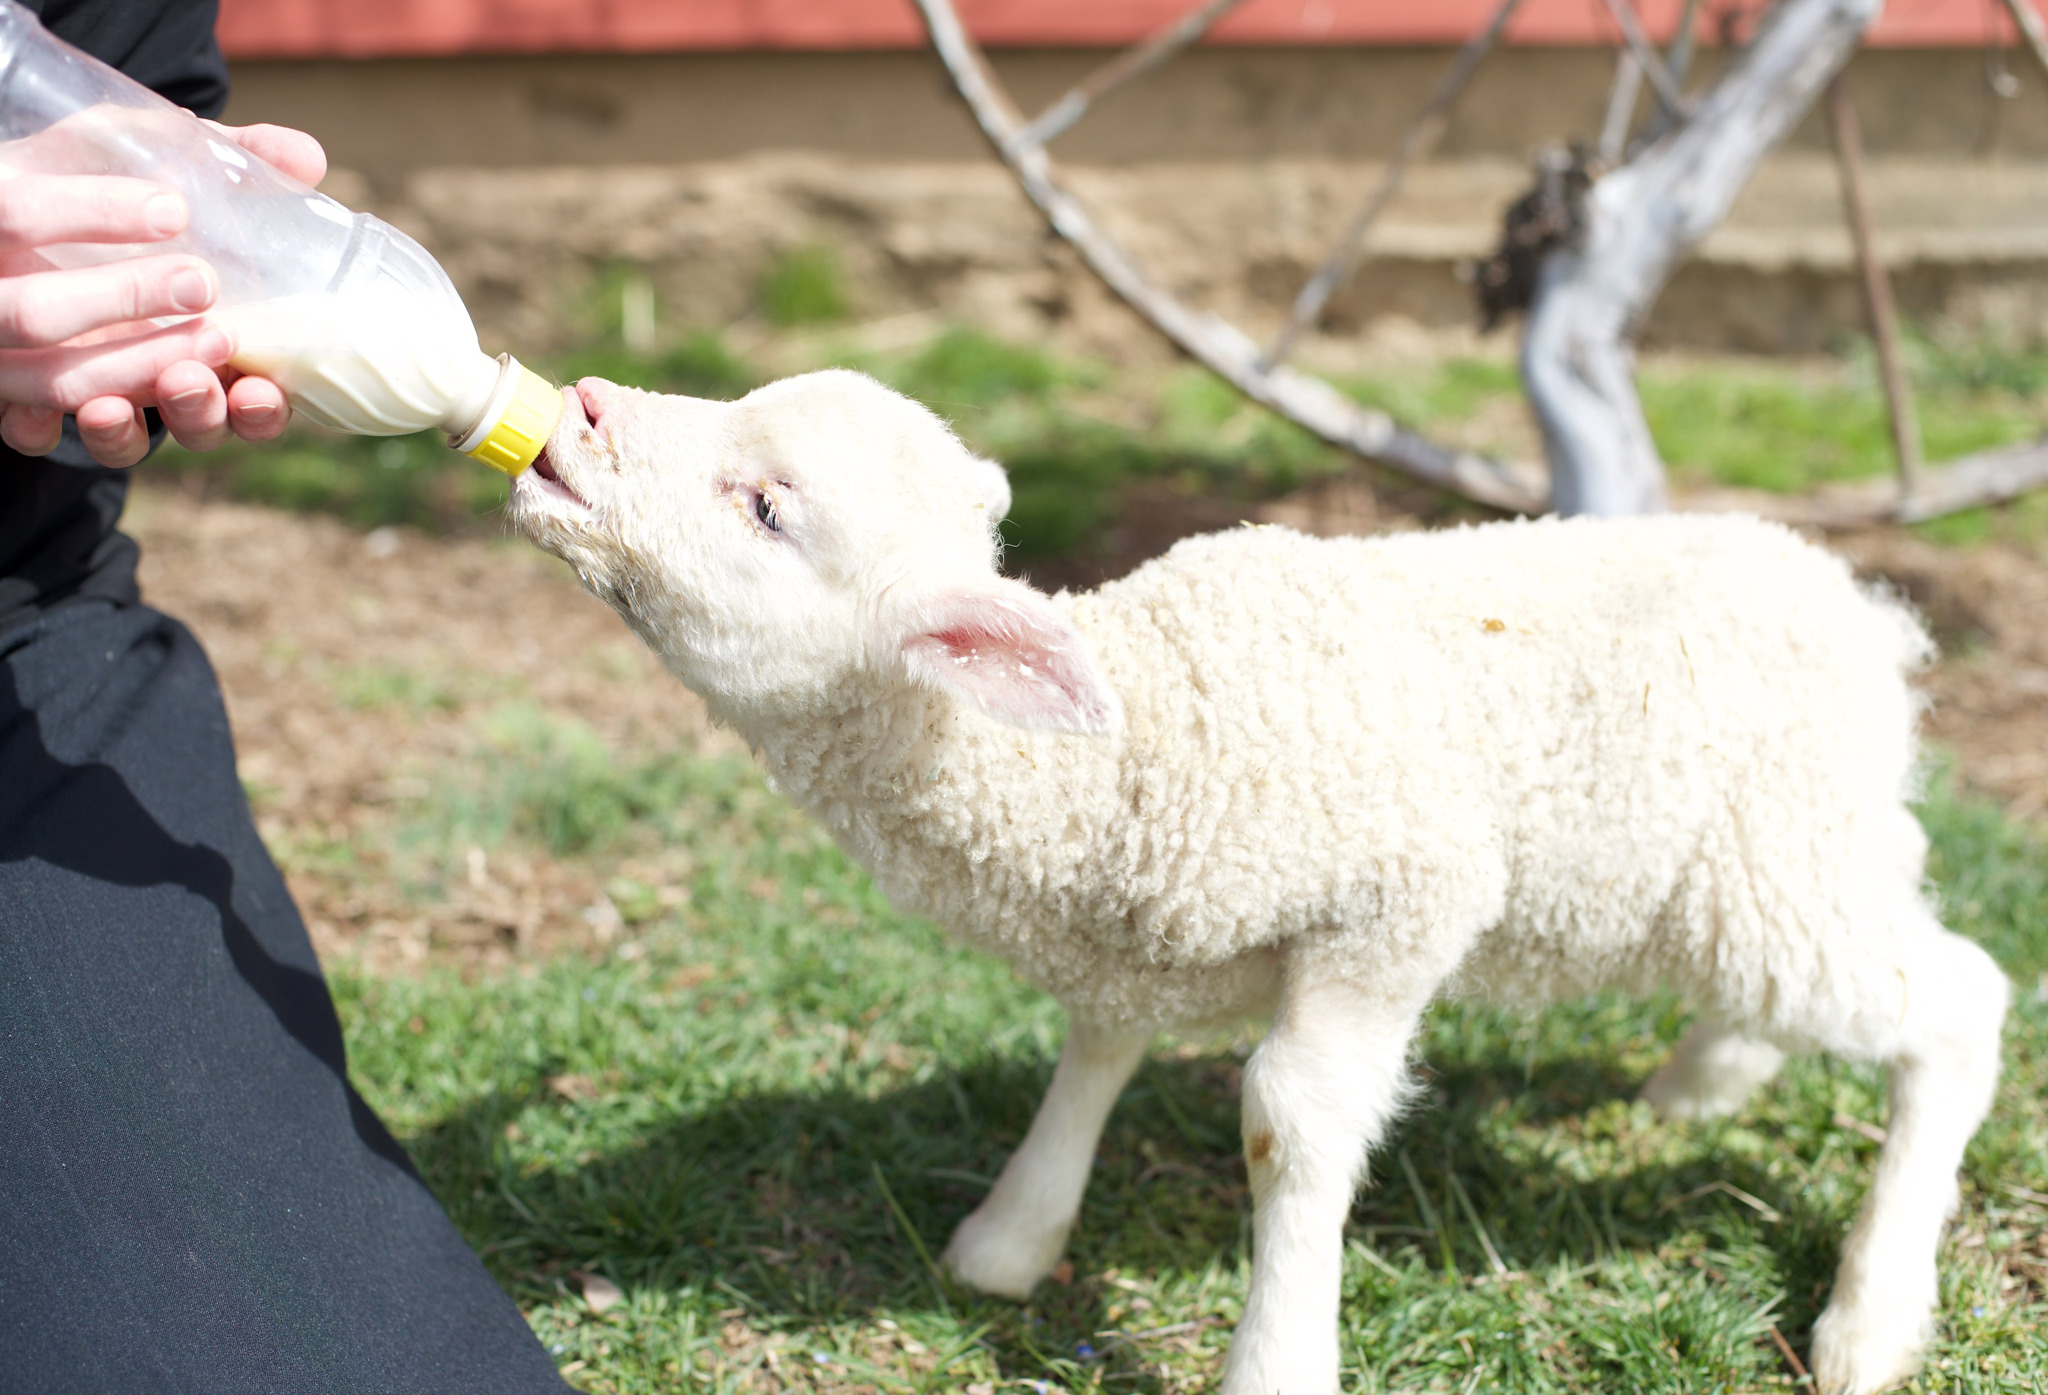 Feeding a baby lamb by bottle at Otterbein Acres Farm | Revittle